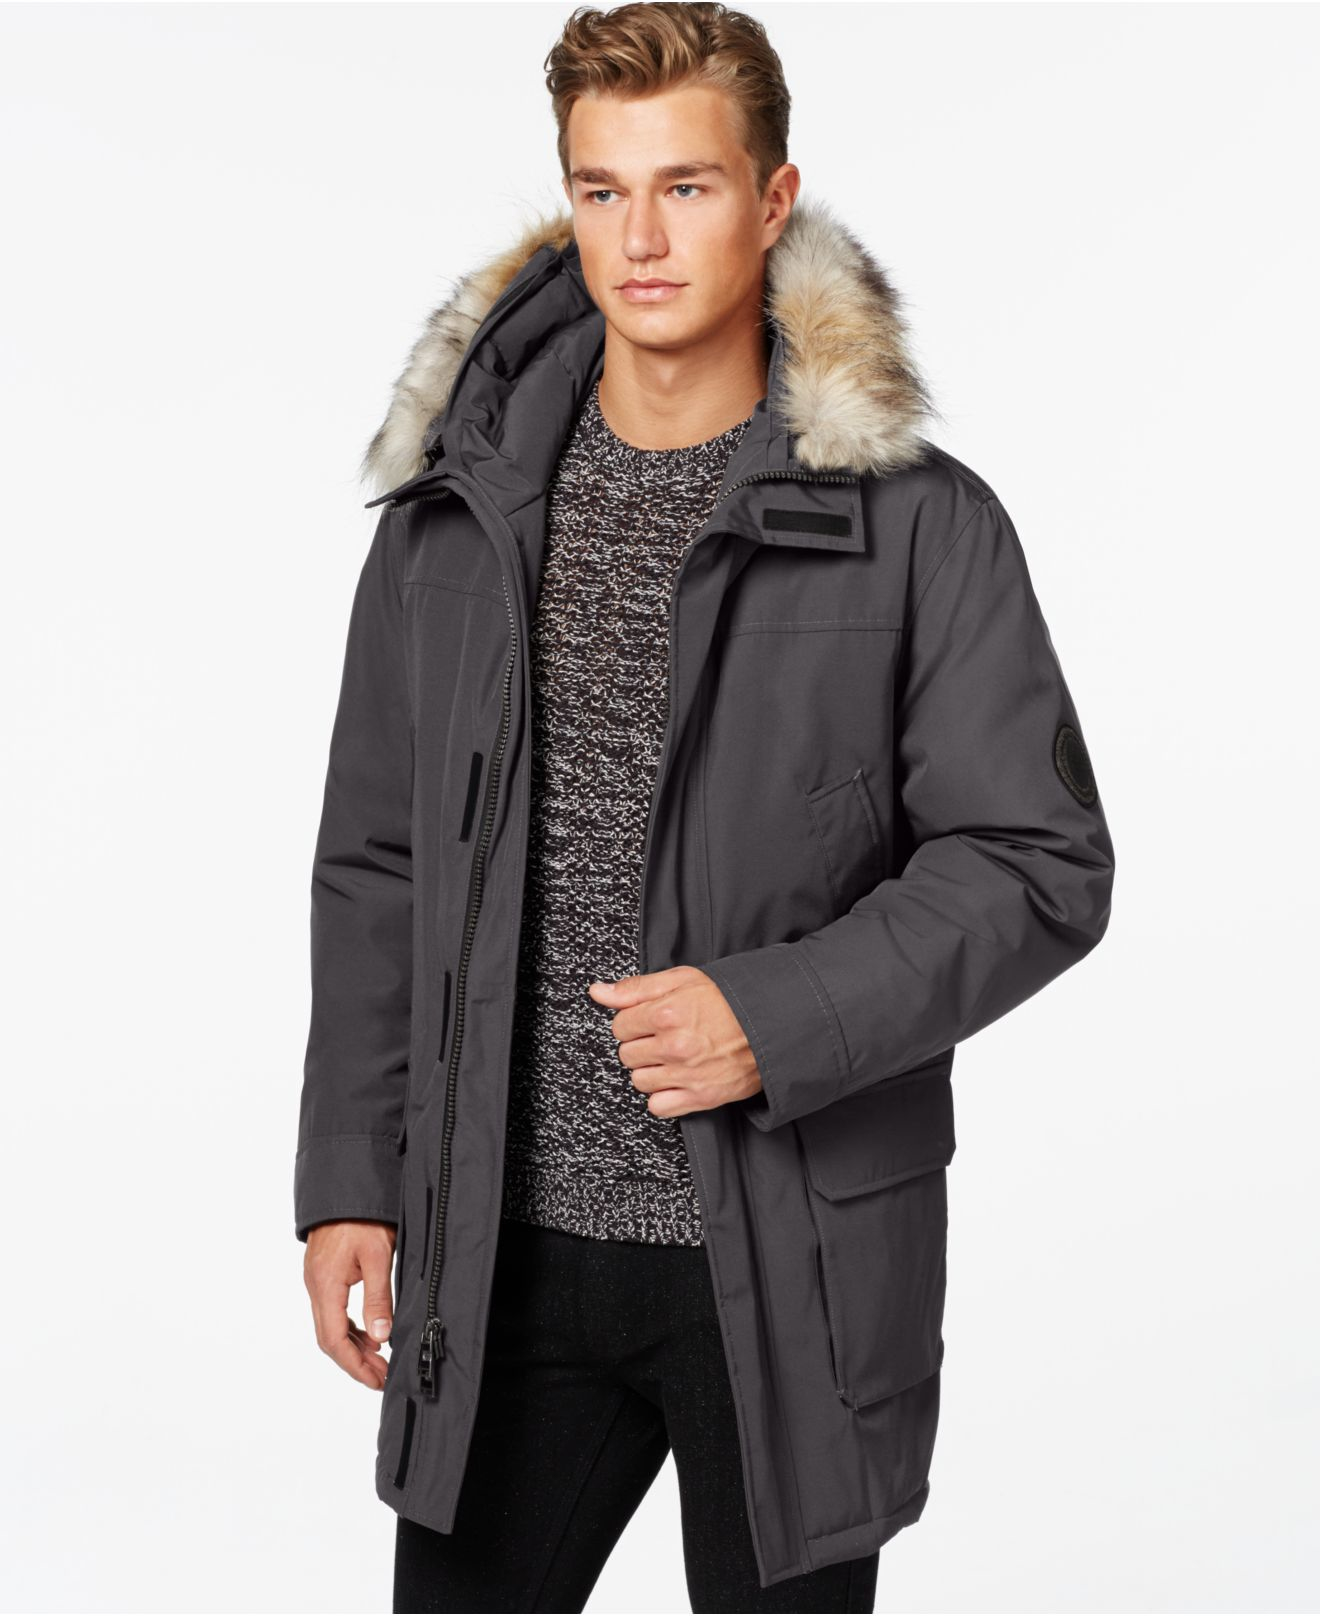 Calvin klein Big & Tall Faux-fur Hooded Jacket in Gray for Men | Lyst